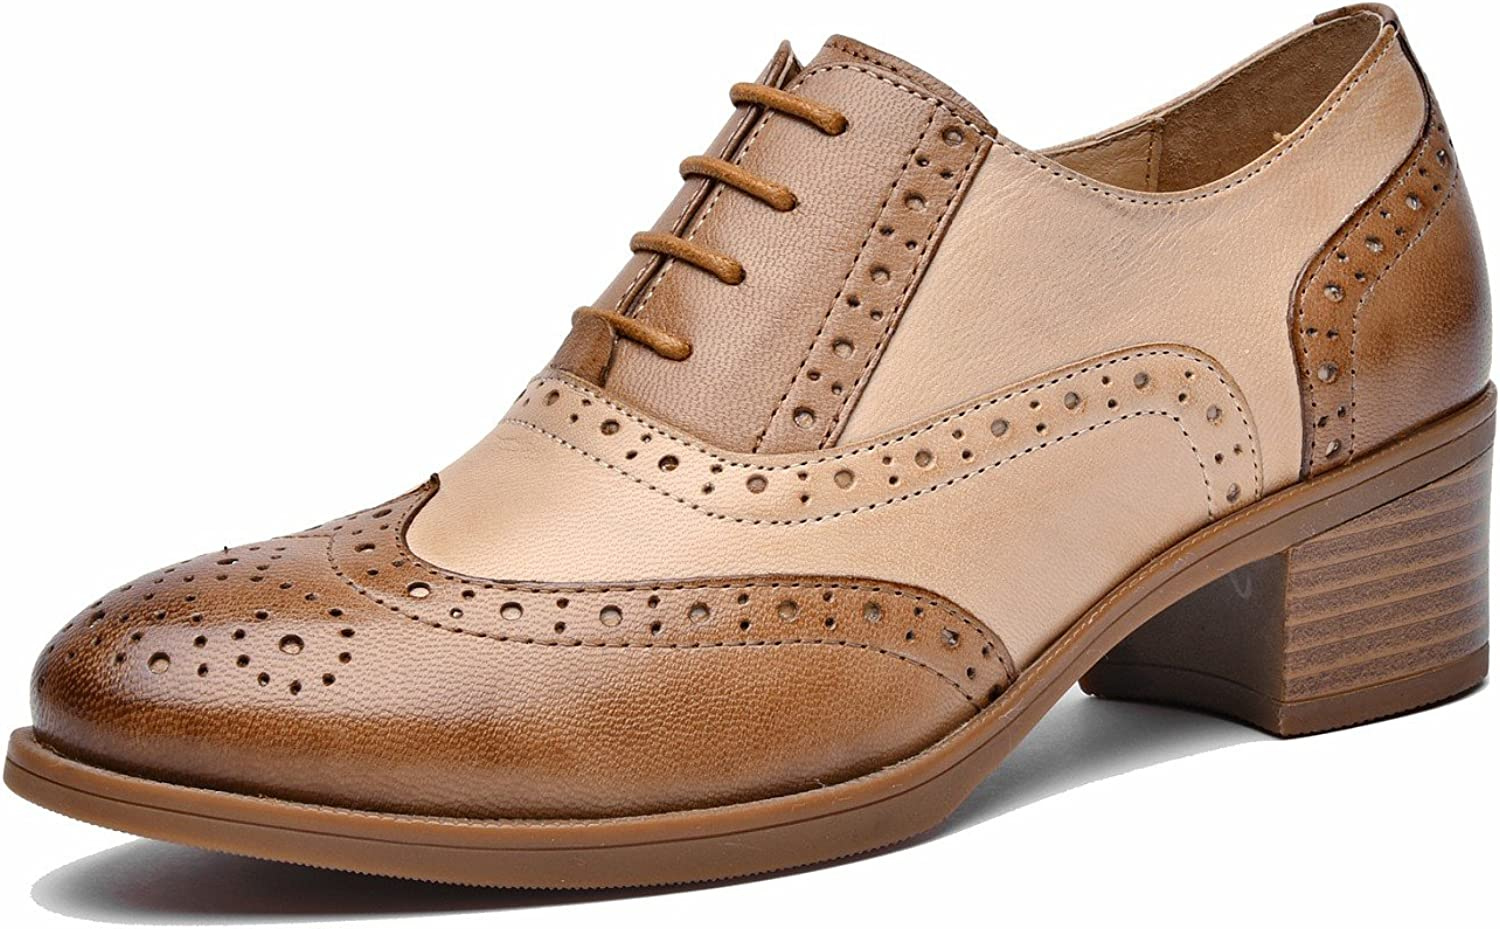 U-lite Women's Mid-Heel Multicolor Perforated Lace-up Wingtip Leather Flat Oxfords Vintage Oxford shoes